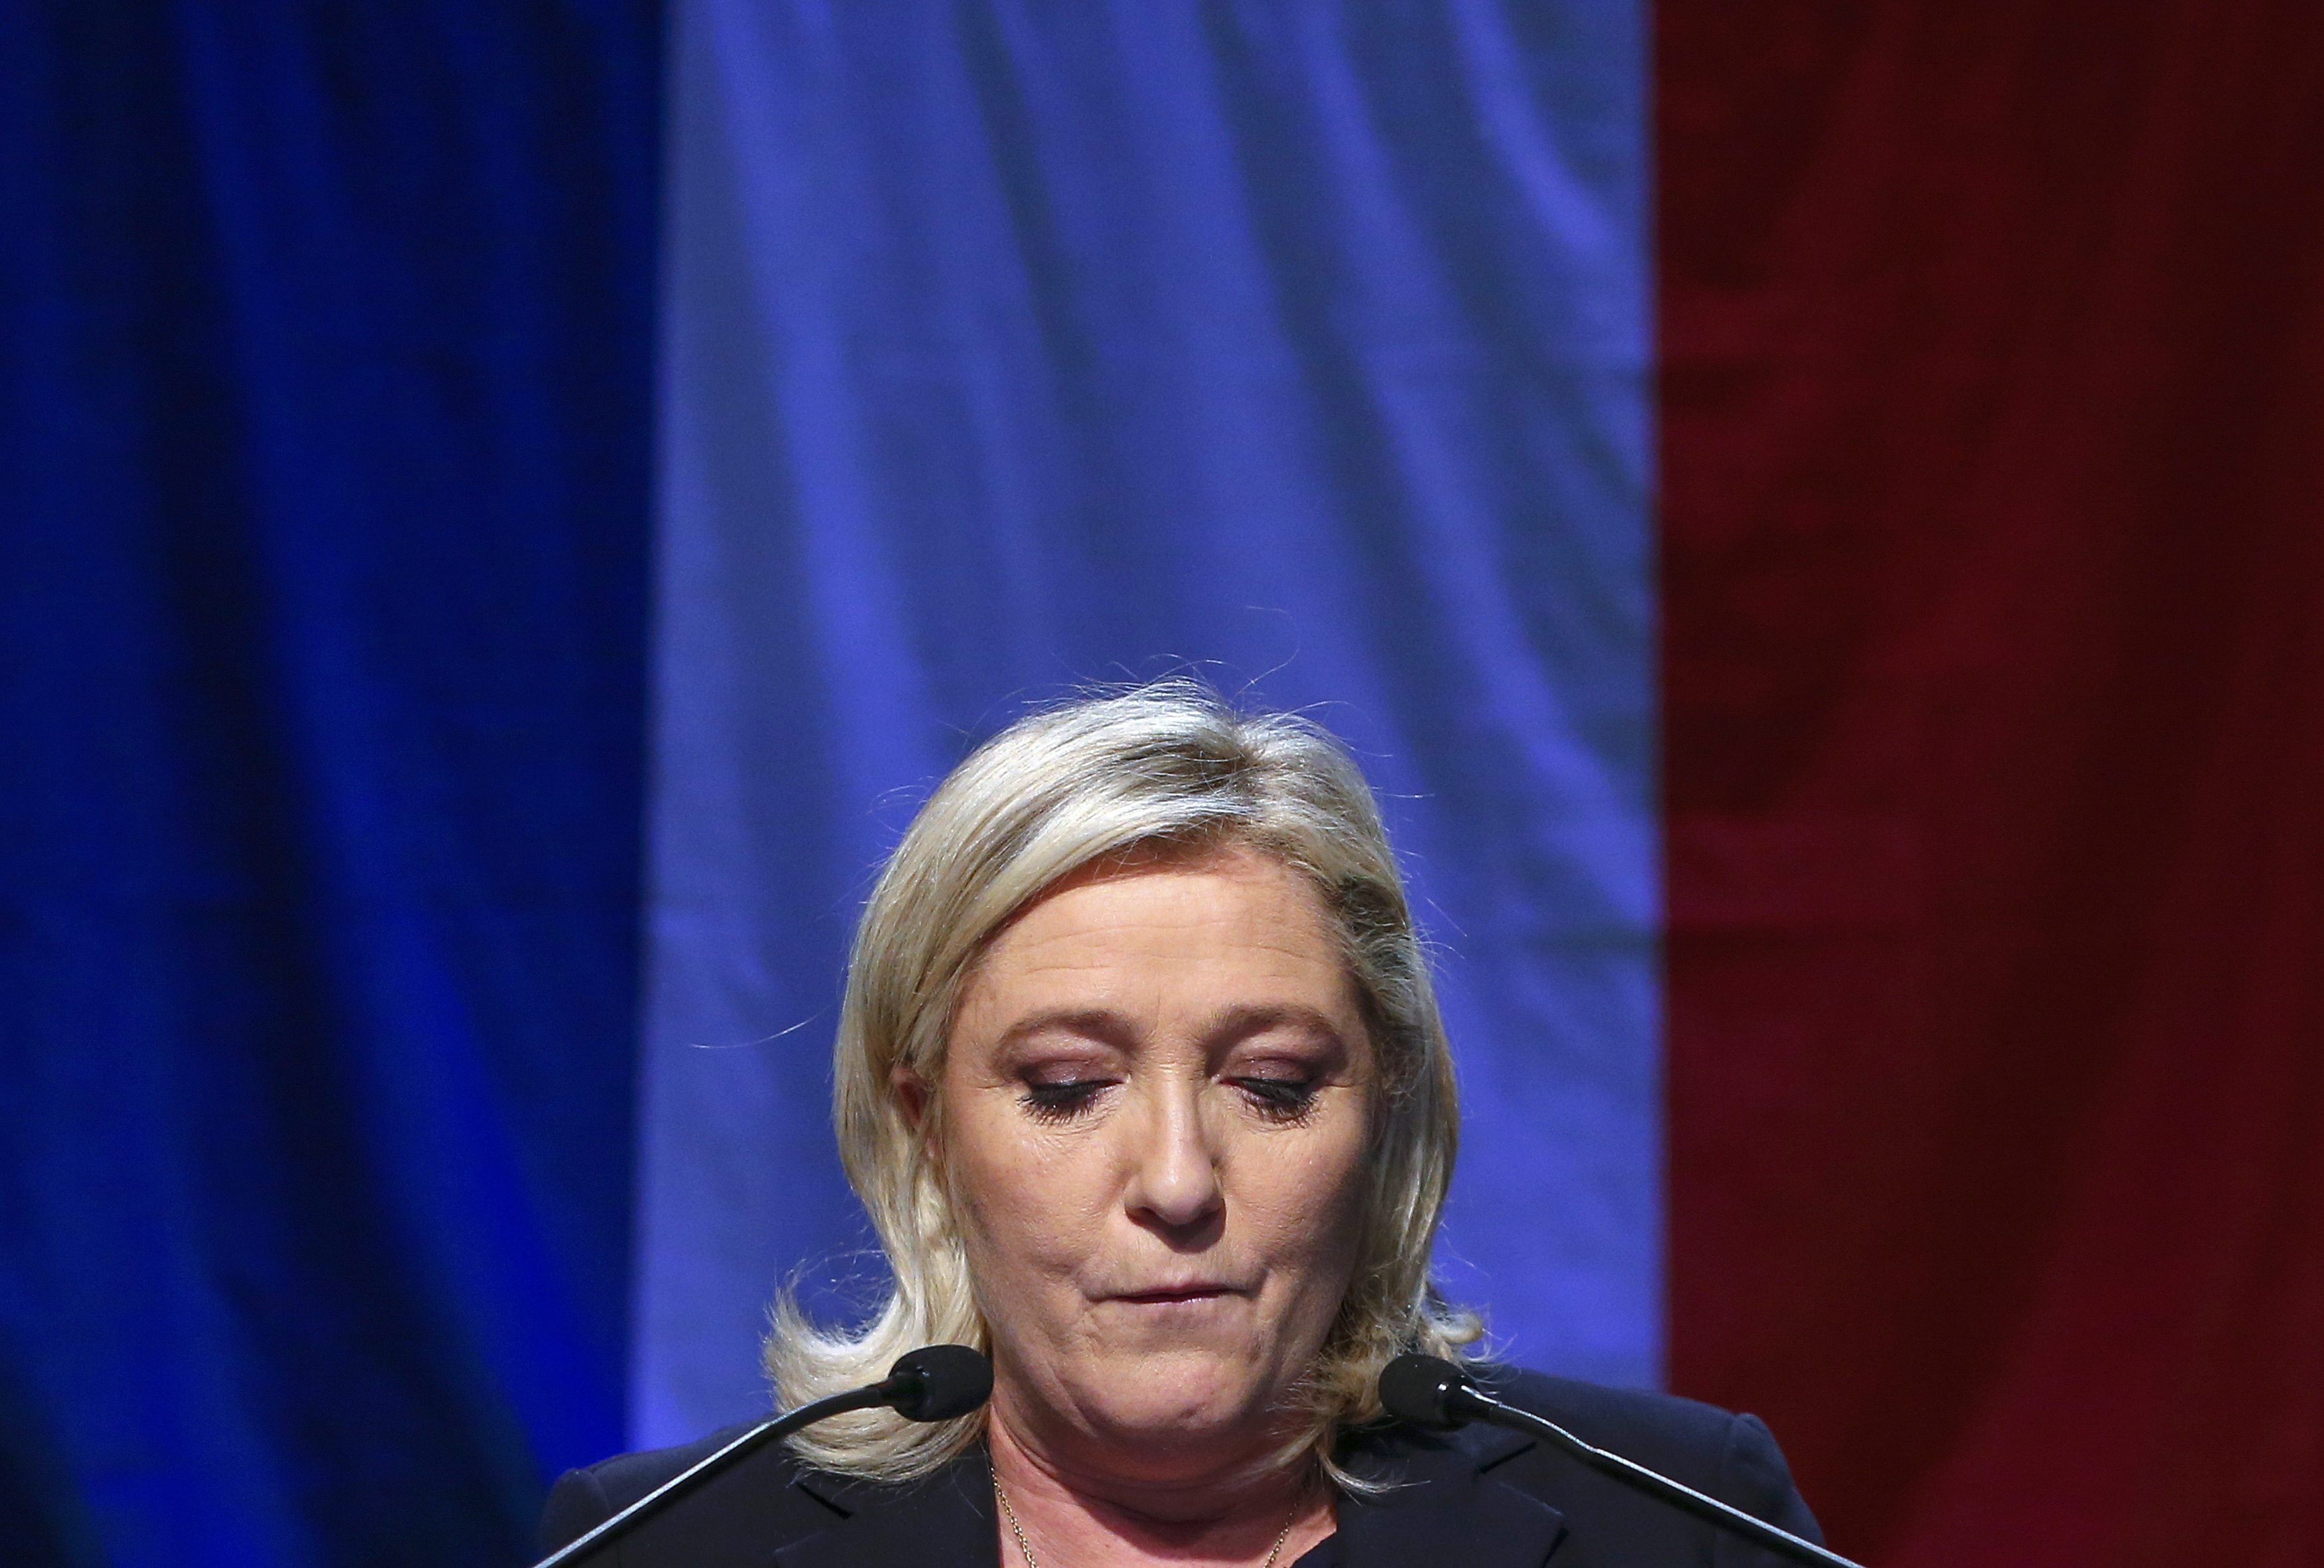 Marine Le Pen, French National Front (FN) political party leader and candidate for the National Front in the Nord-Pas-de-Calais-Picardie region, delivers a speech after results in the second-round regional elections in Henin-Beaumont, France, Dec. 13, 2015.